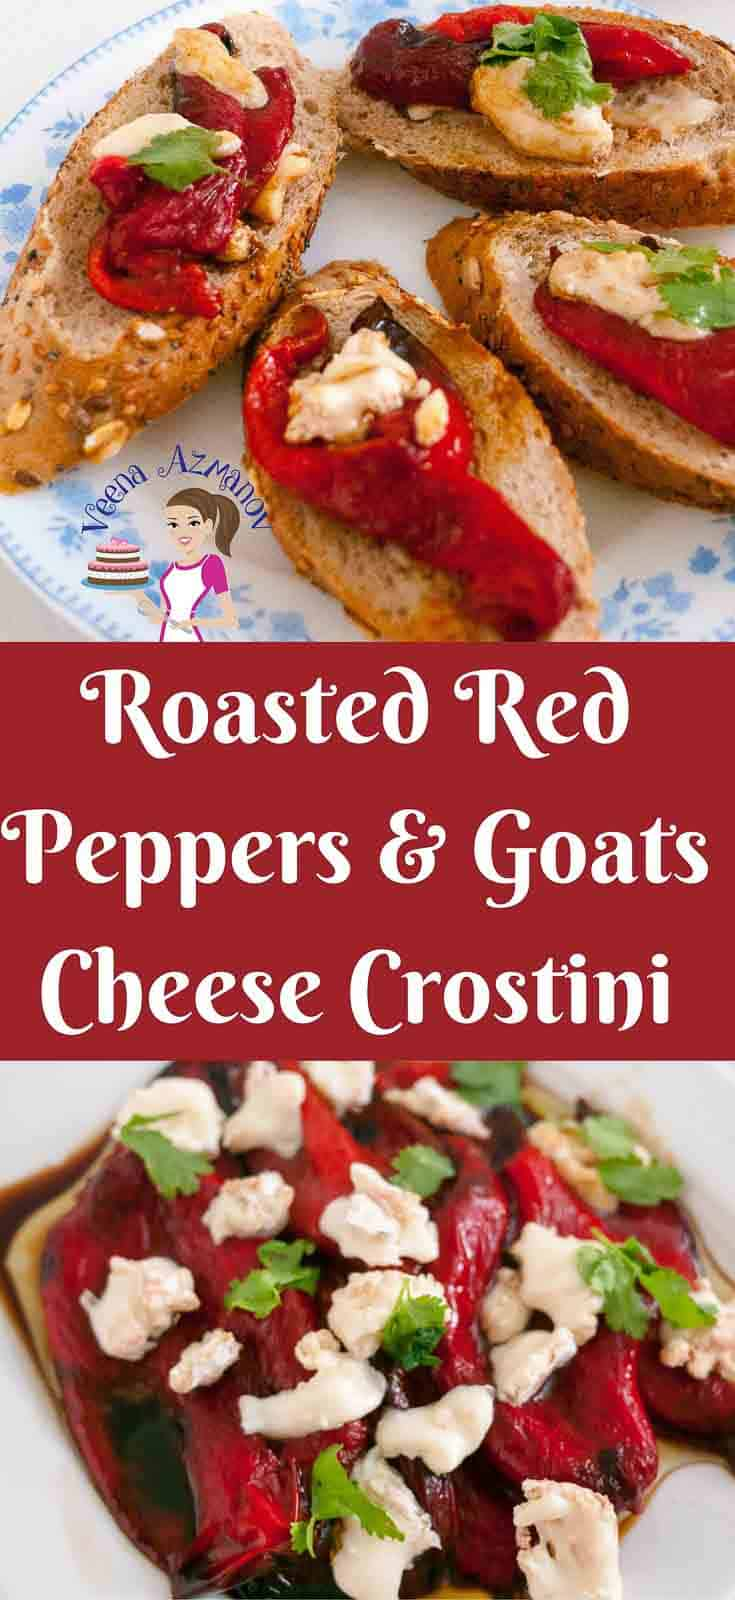 These roasted red pepper goats cheese crostini are an absolute treat served as a snack on it's own or as an appetizer to get your taste buds ready for a wholesome meal. The sweet roasted red peppers are marinated in balsamic and olive oil combined with creamy goats cheese over warm crusty bread